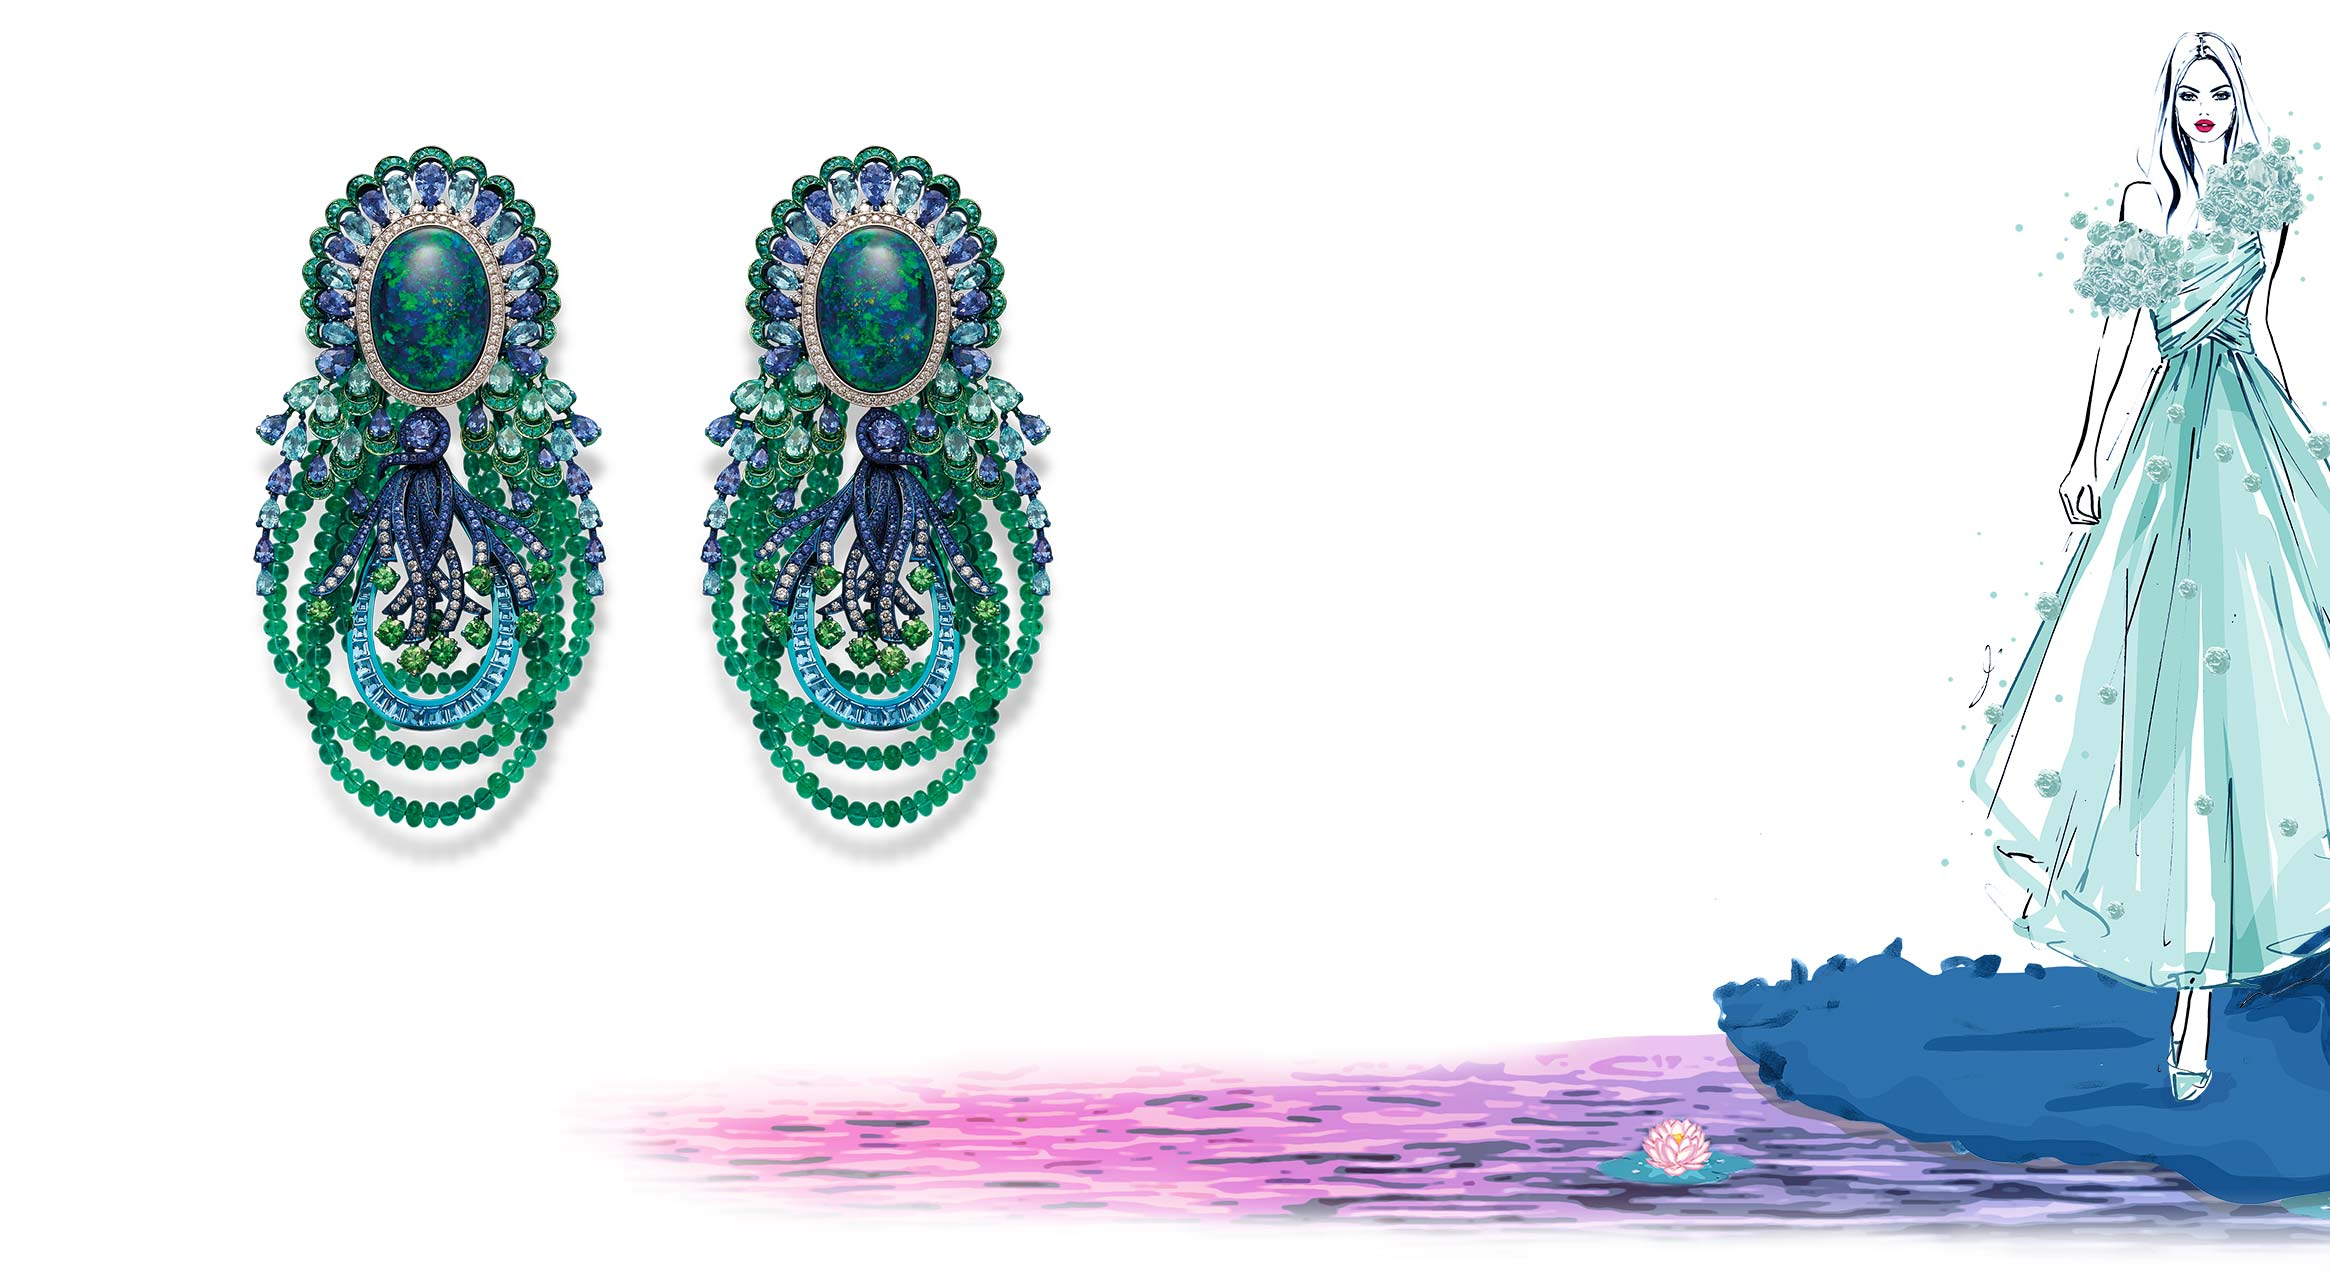 A stunning pair of earrings highlighted with opals and emerald beads.